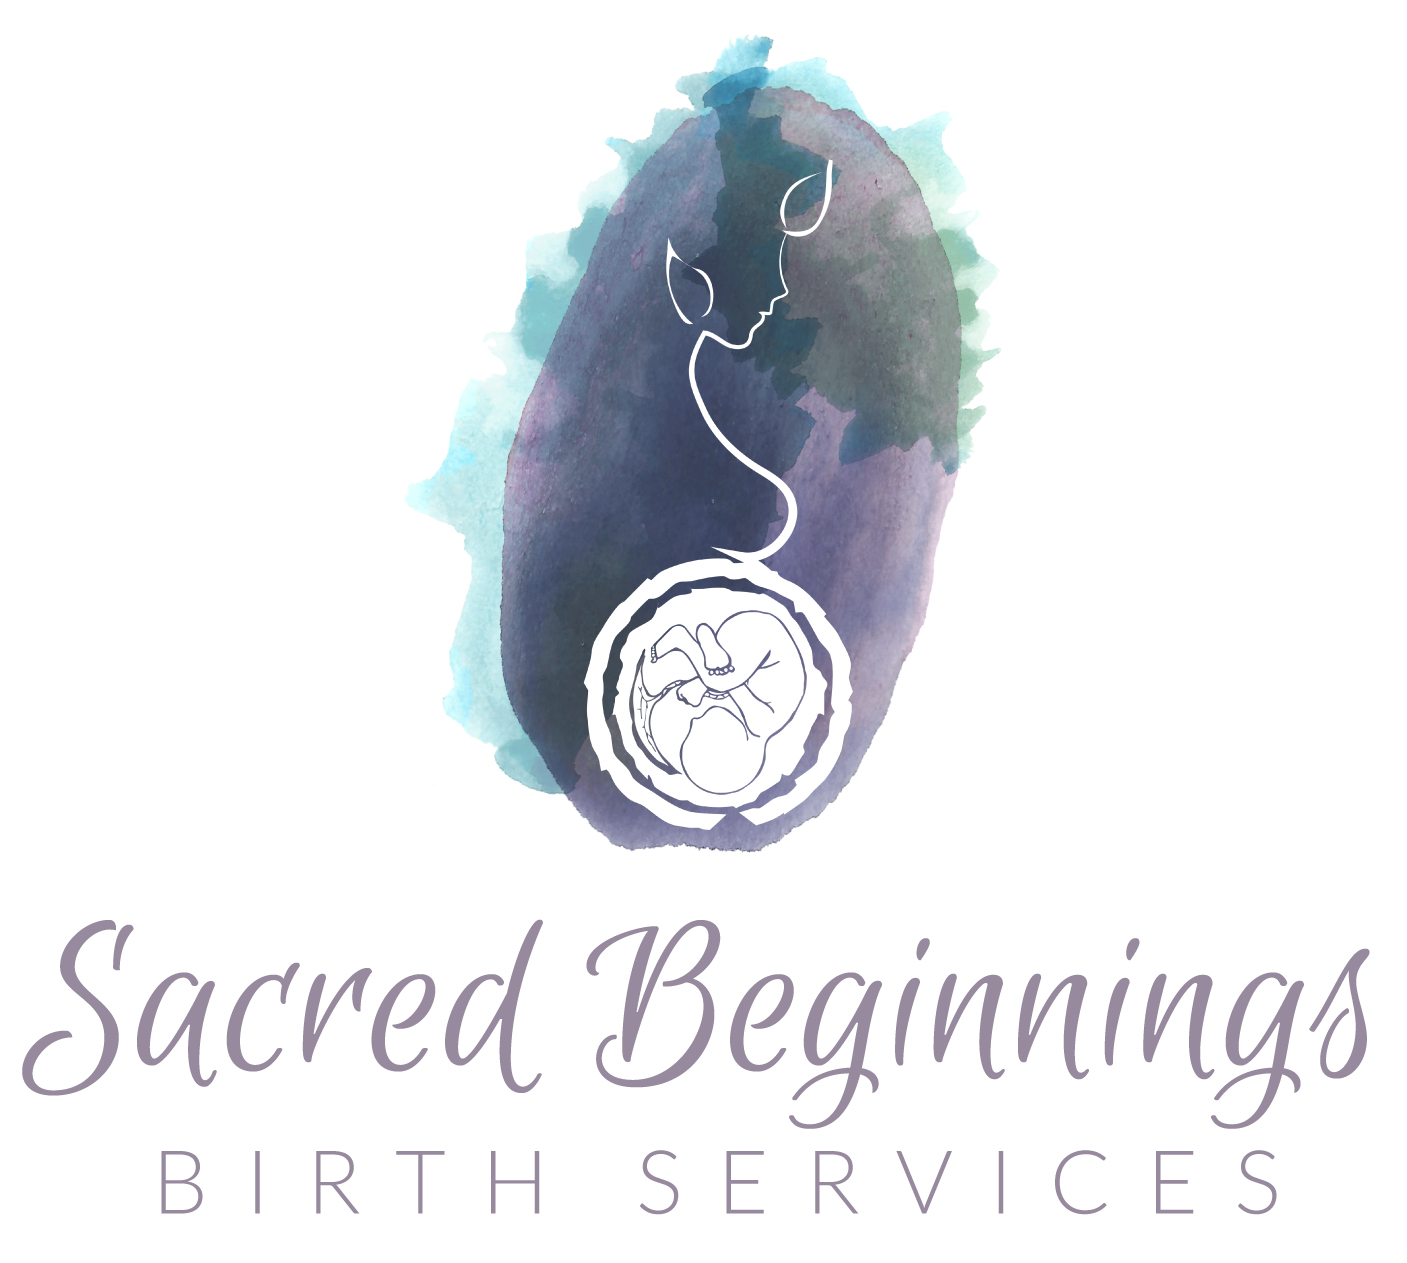 Sacred Beginnings Birth Services